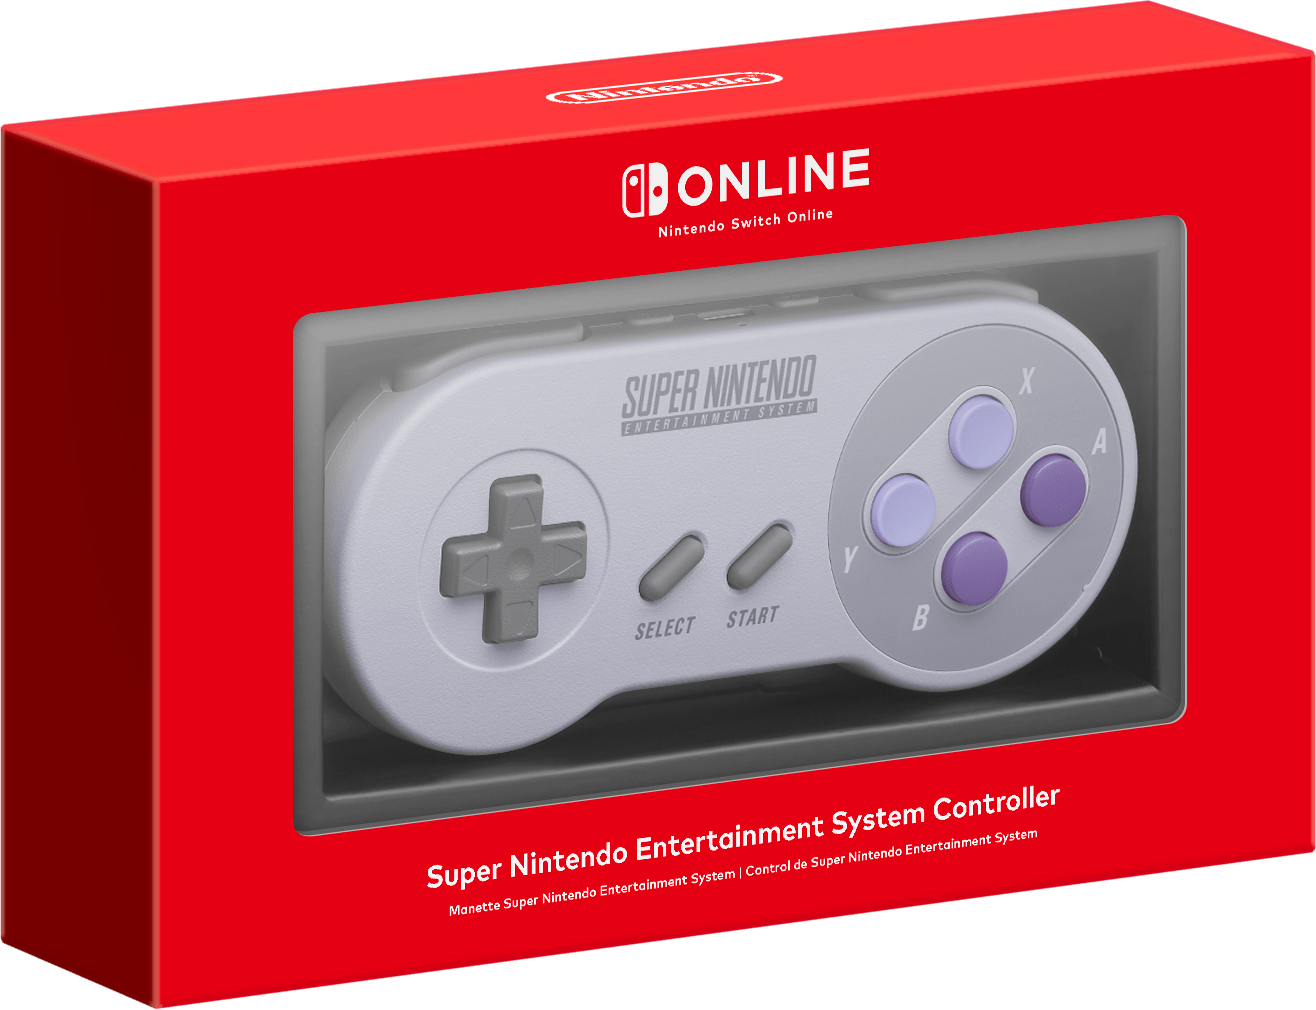 Switch Online Super Nintendo Entertainment System Controller image